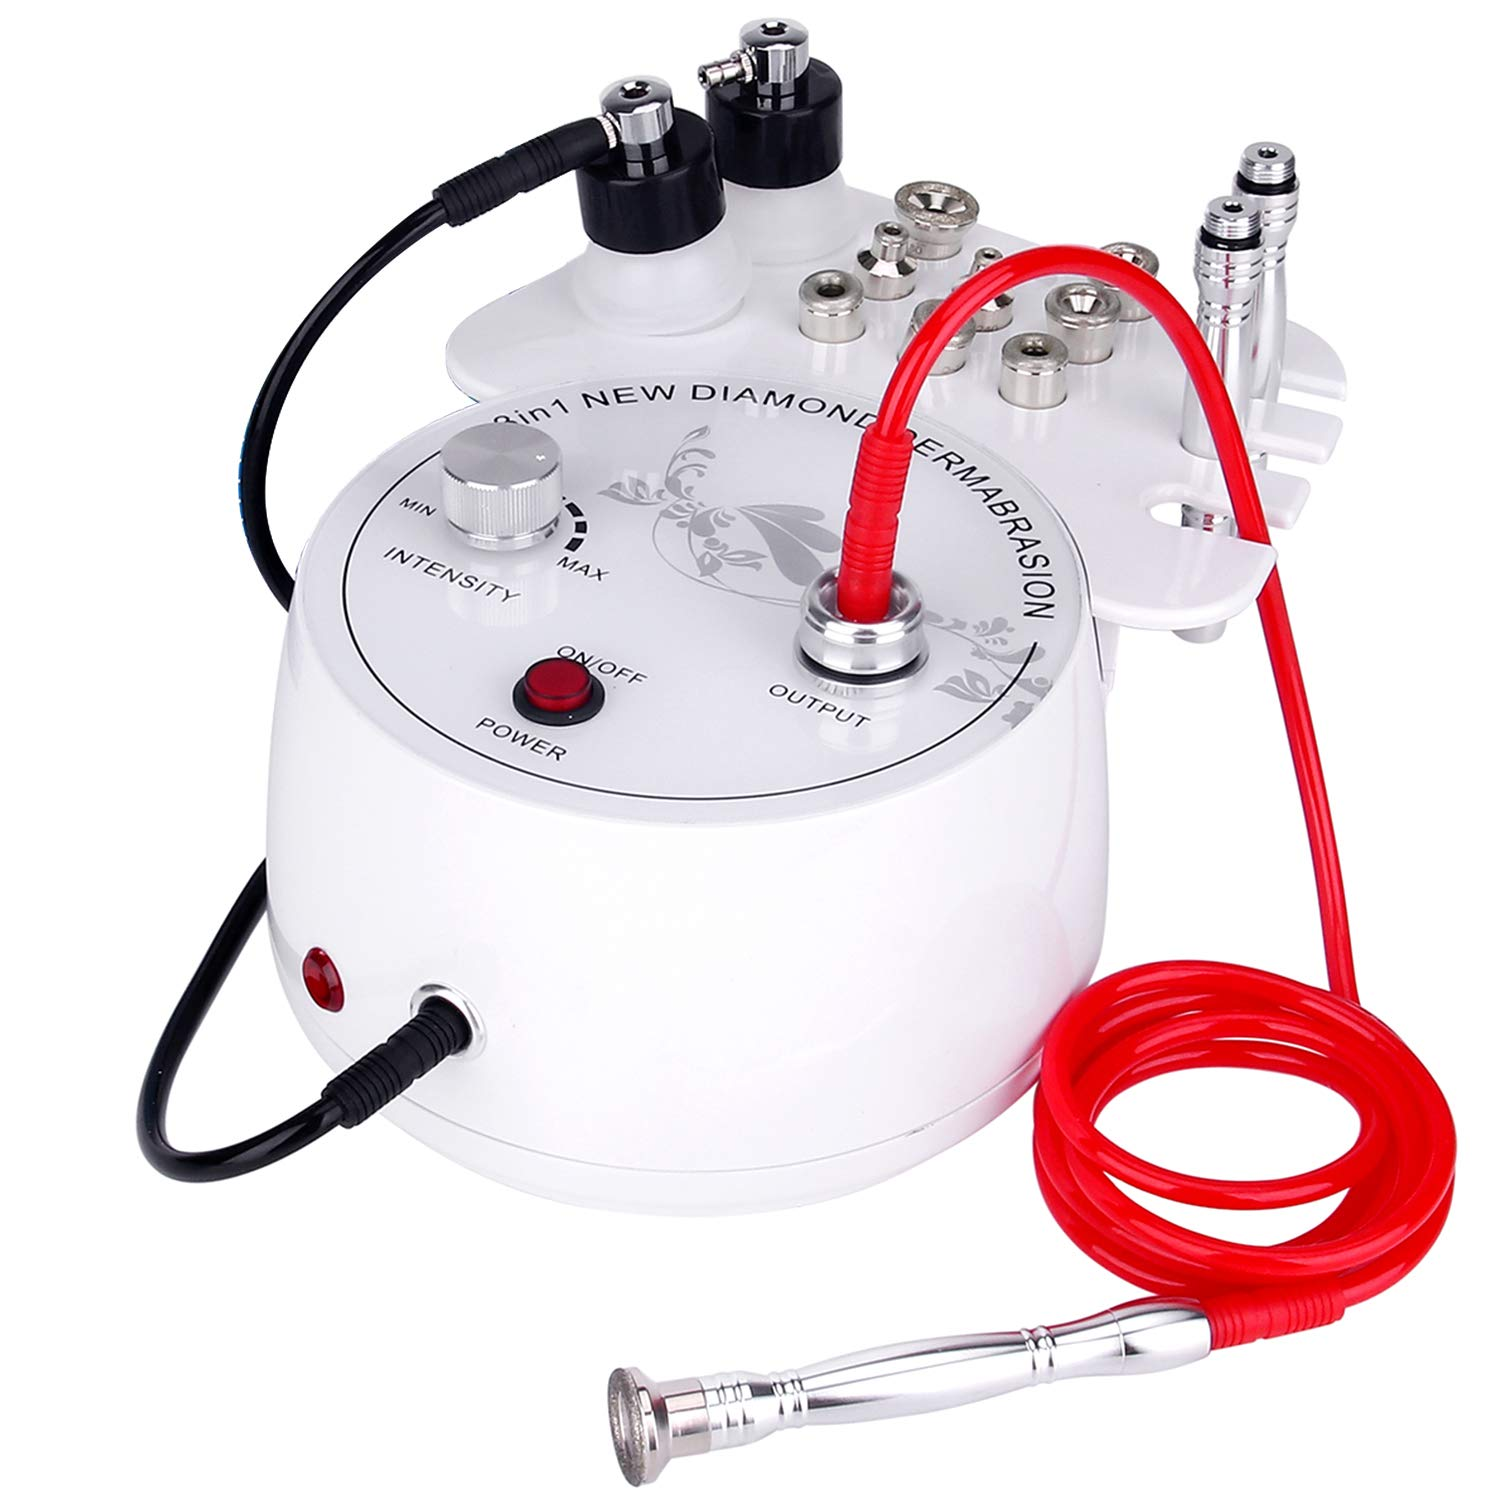 3 in 1 Diamond Microdermabrasion, Doris Direct Dermabrasion Machine Facial Care Salon Equipment for Personal Home Use (Suction Power: 0-55cmHg) by mcwdoit